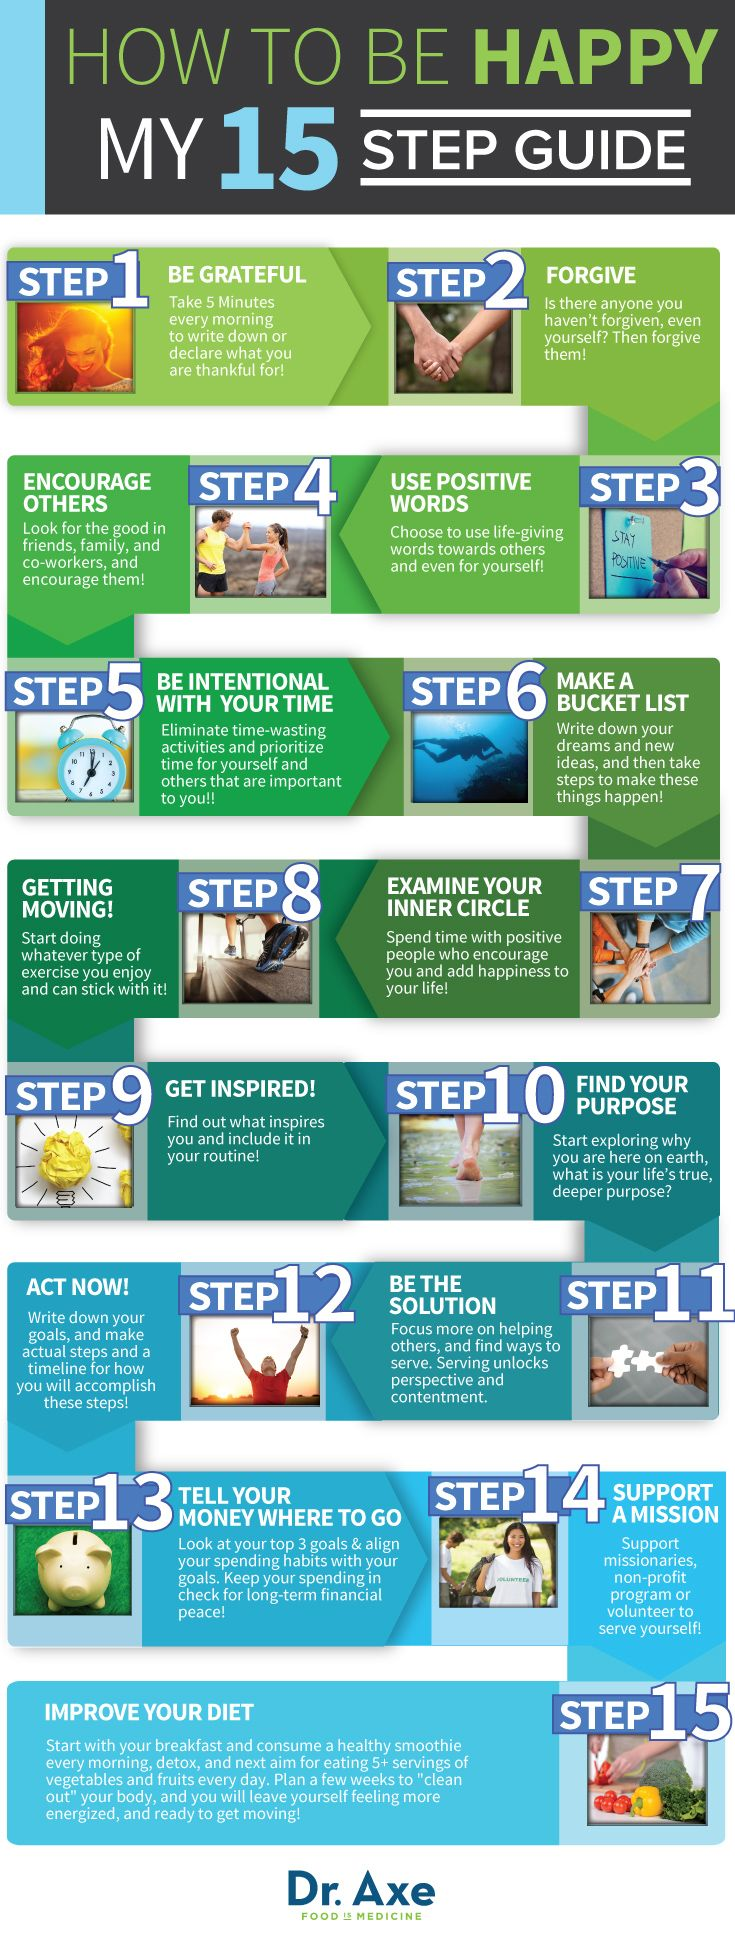 15 step guide-How to be Happy